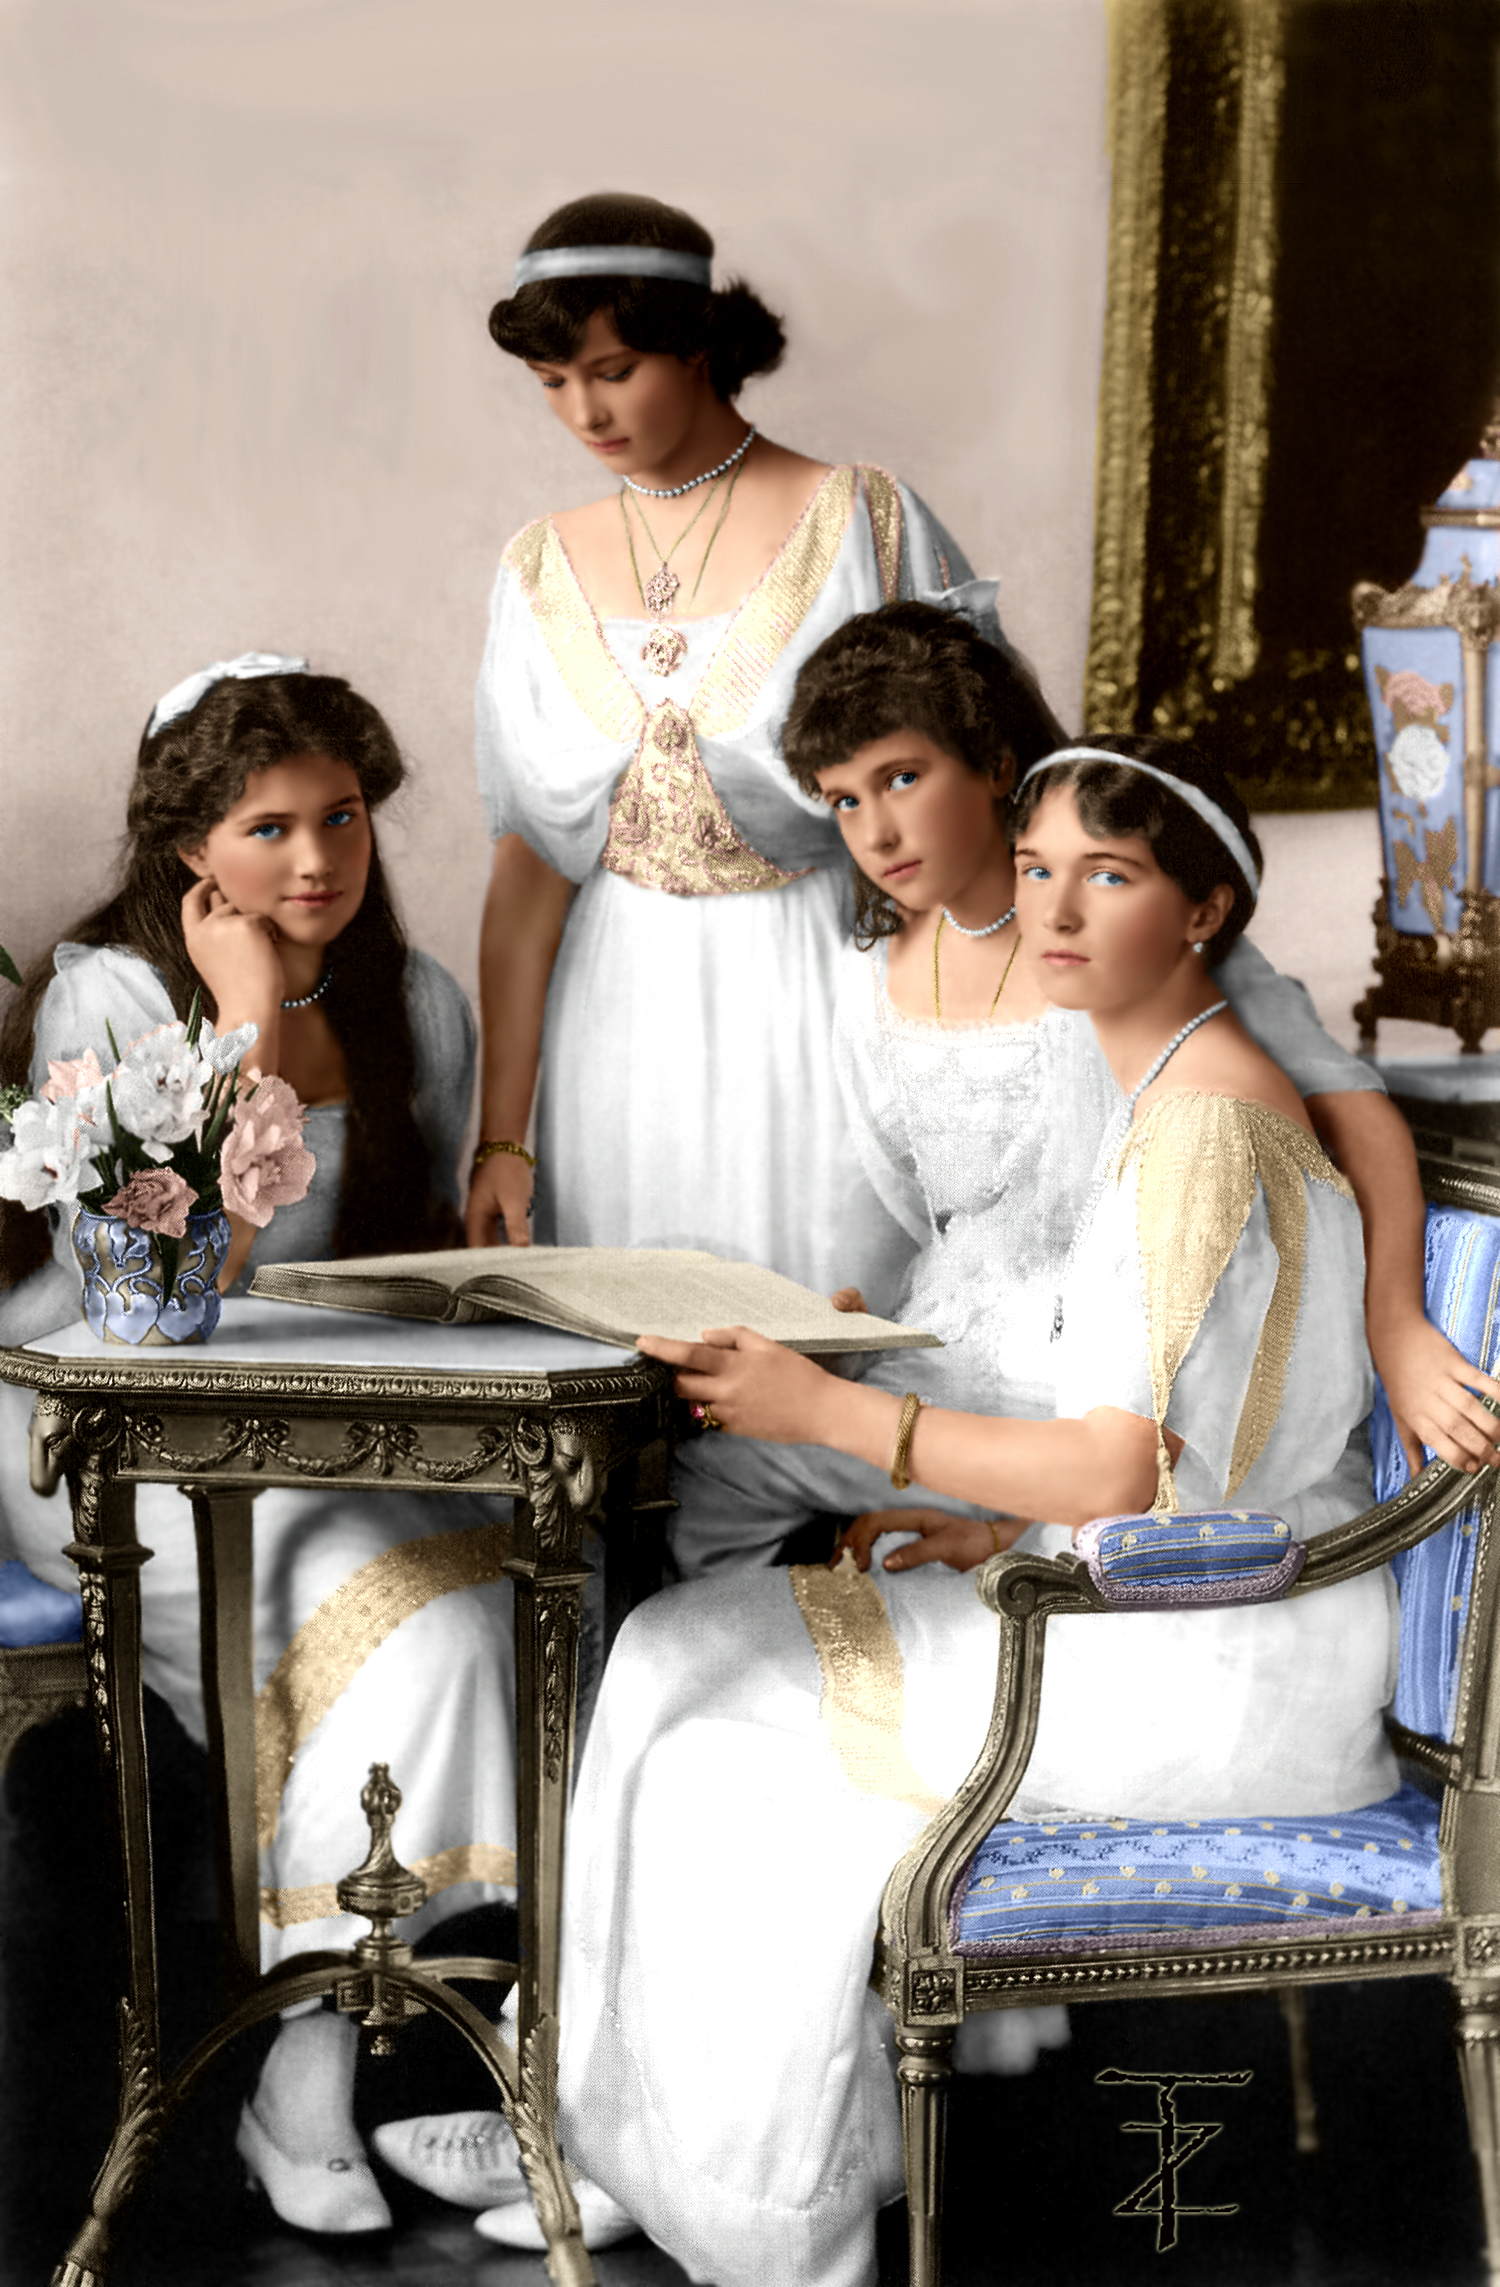 OTMA : The daughters of Tsar Nicholas II